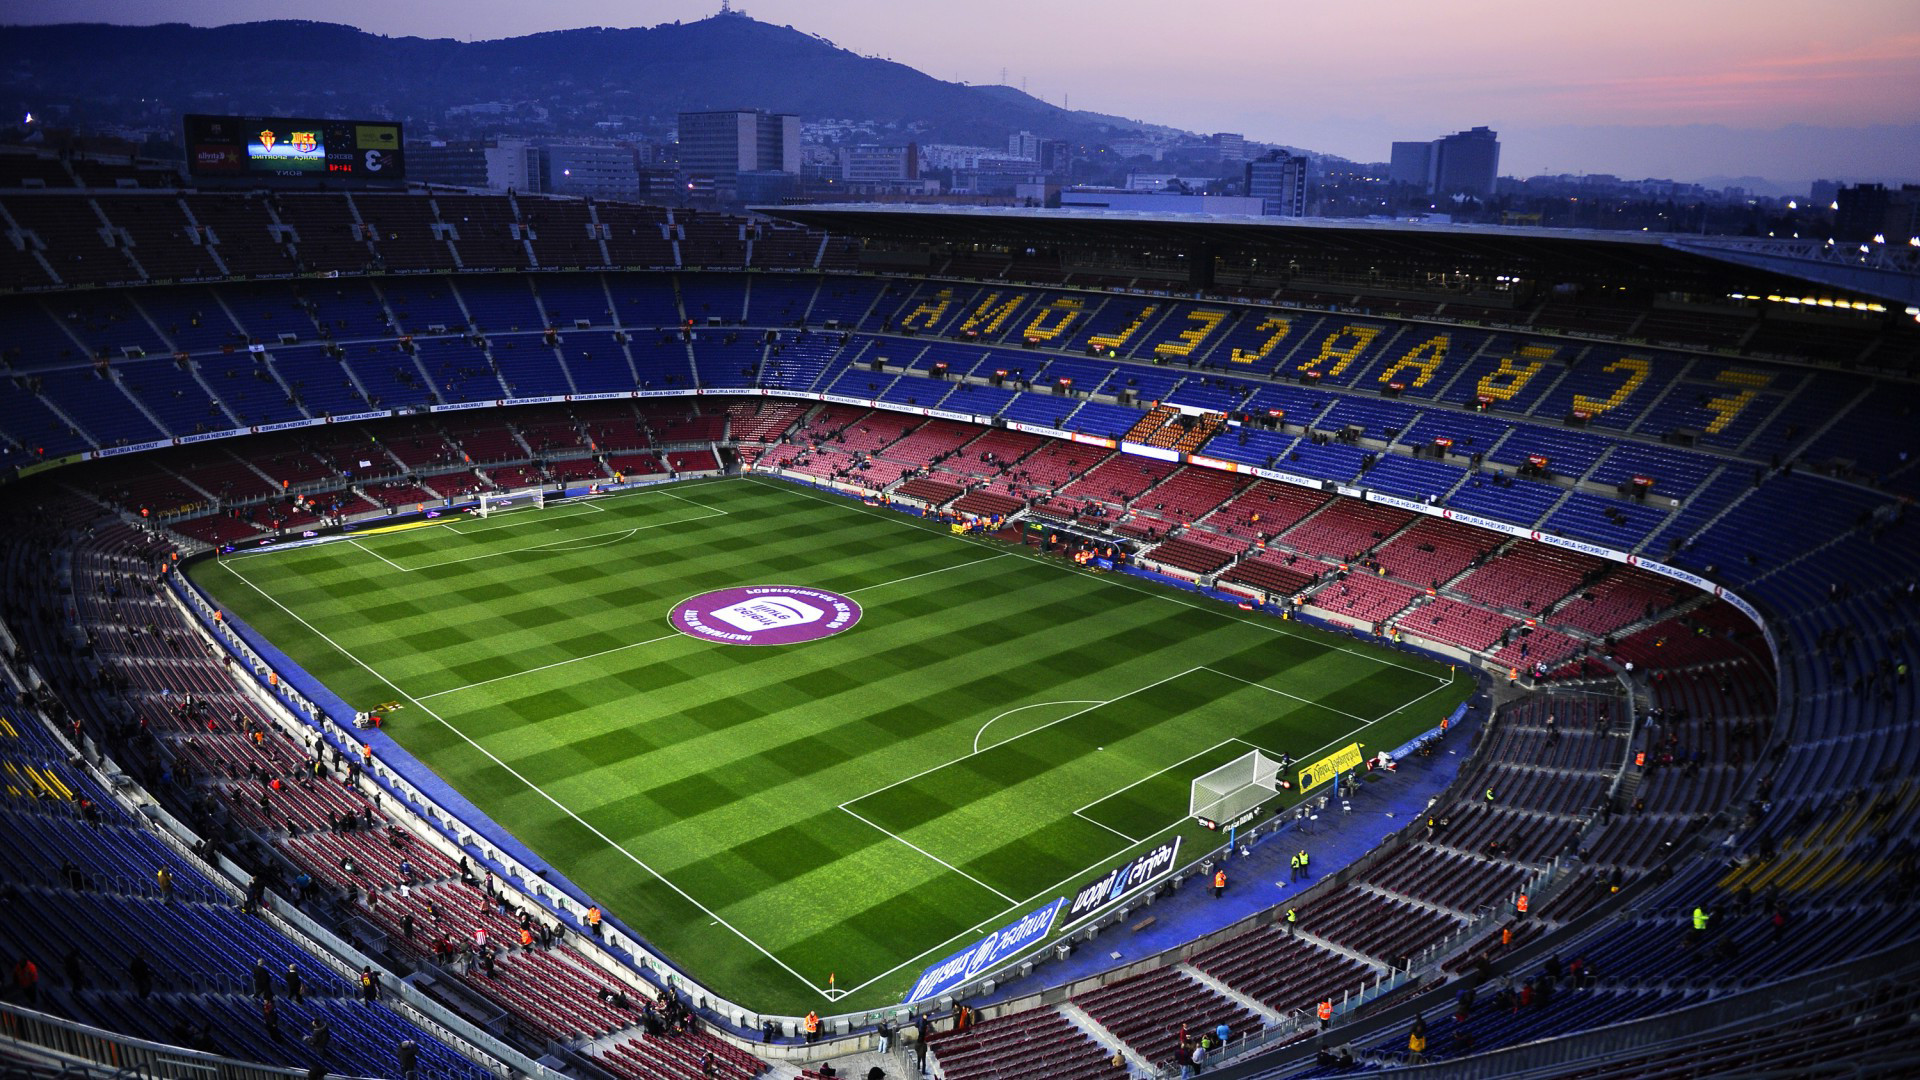 Camp nou wallpaper 79 images - Camp nou 4k wallpaper ...